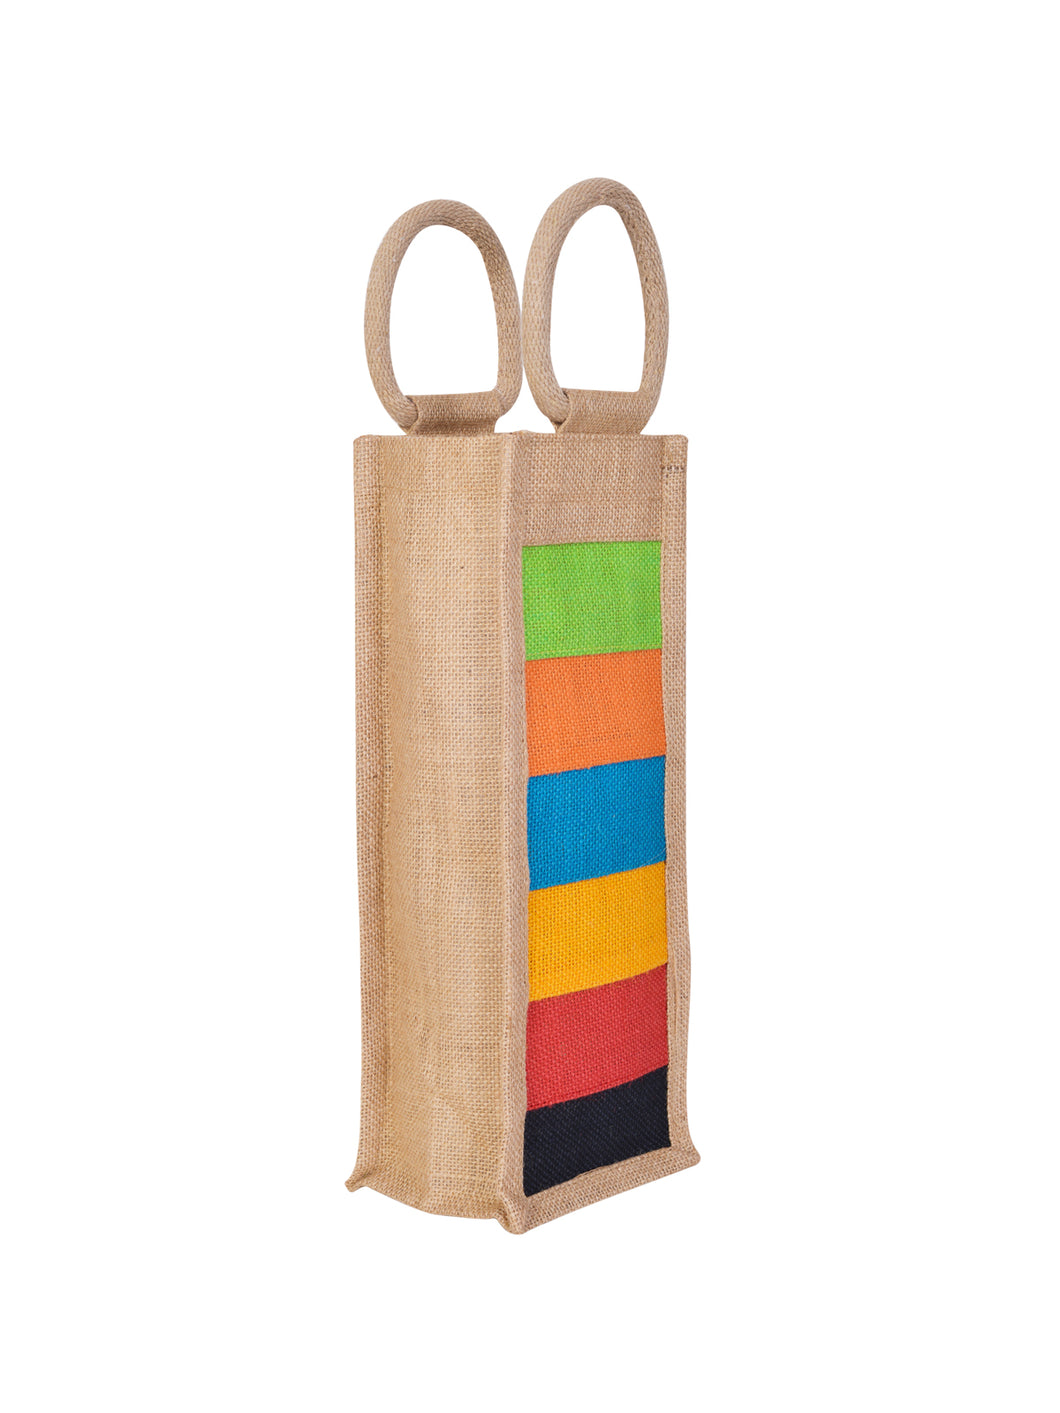 BOTTLE BAG 6 COLOUR (B-121-MULTICOLOR)